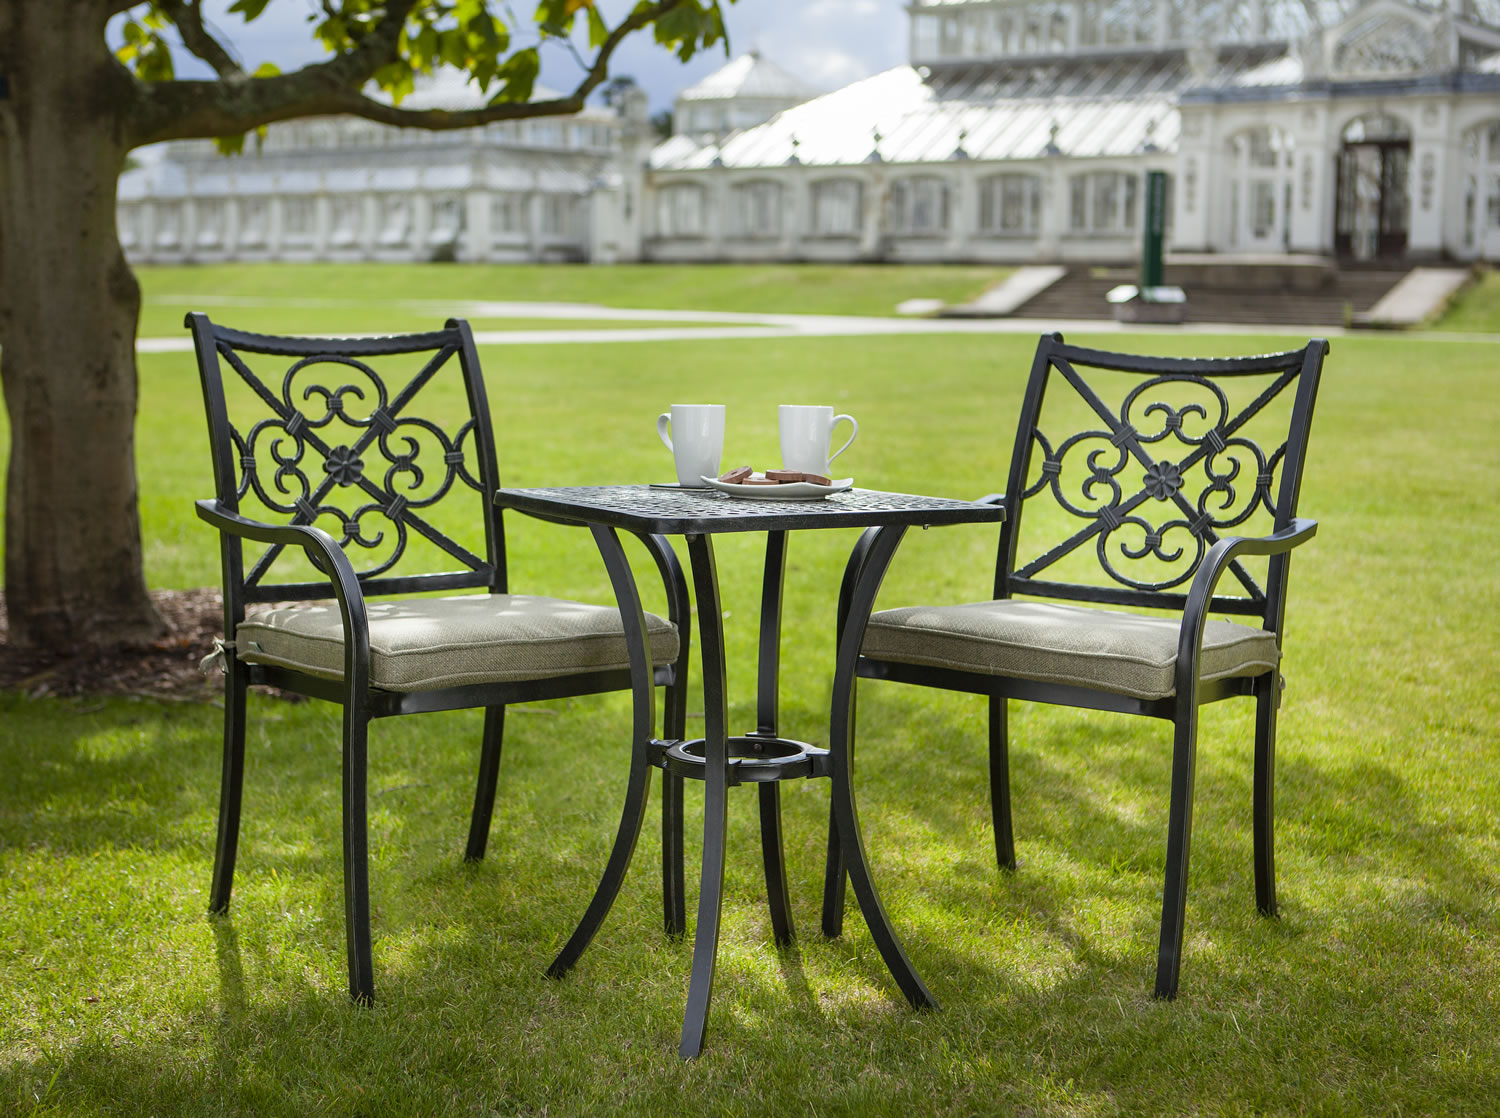 Garden Bistro Sets ... Bistro sets should match the design of your home.  if you have FYMZVDS